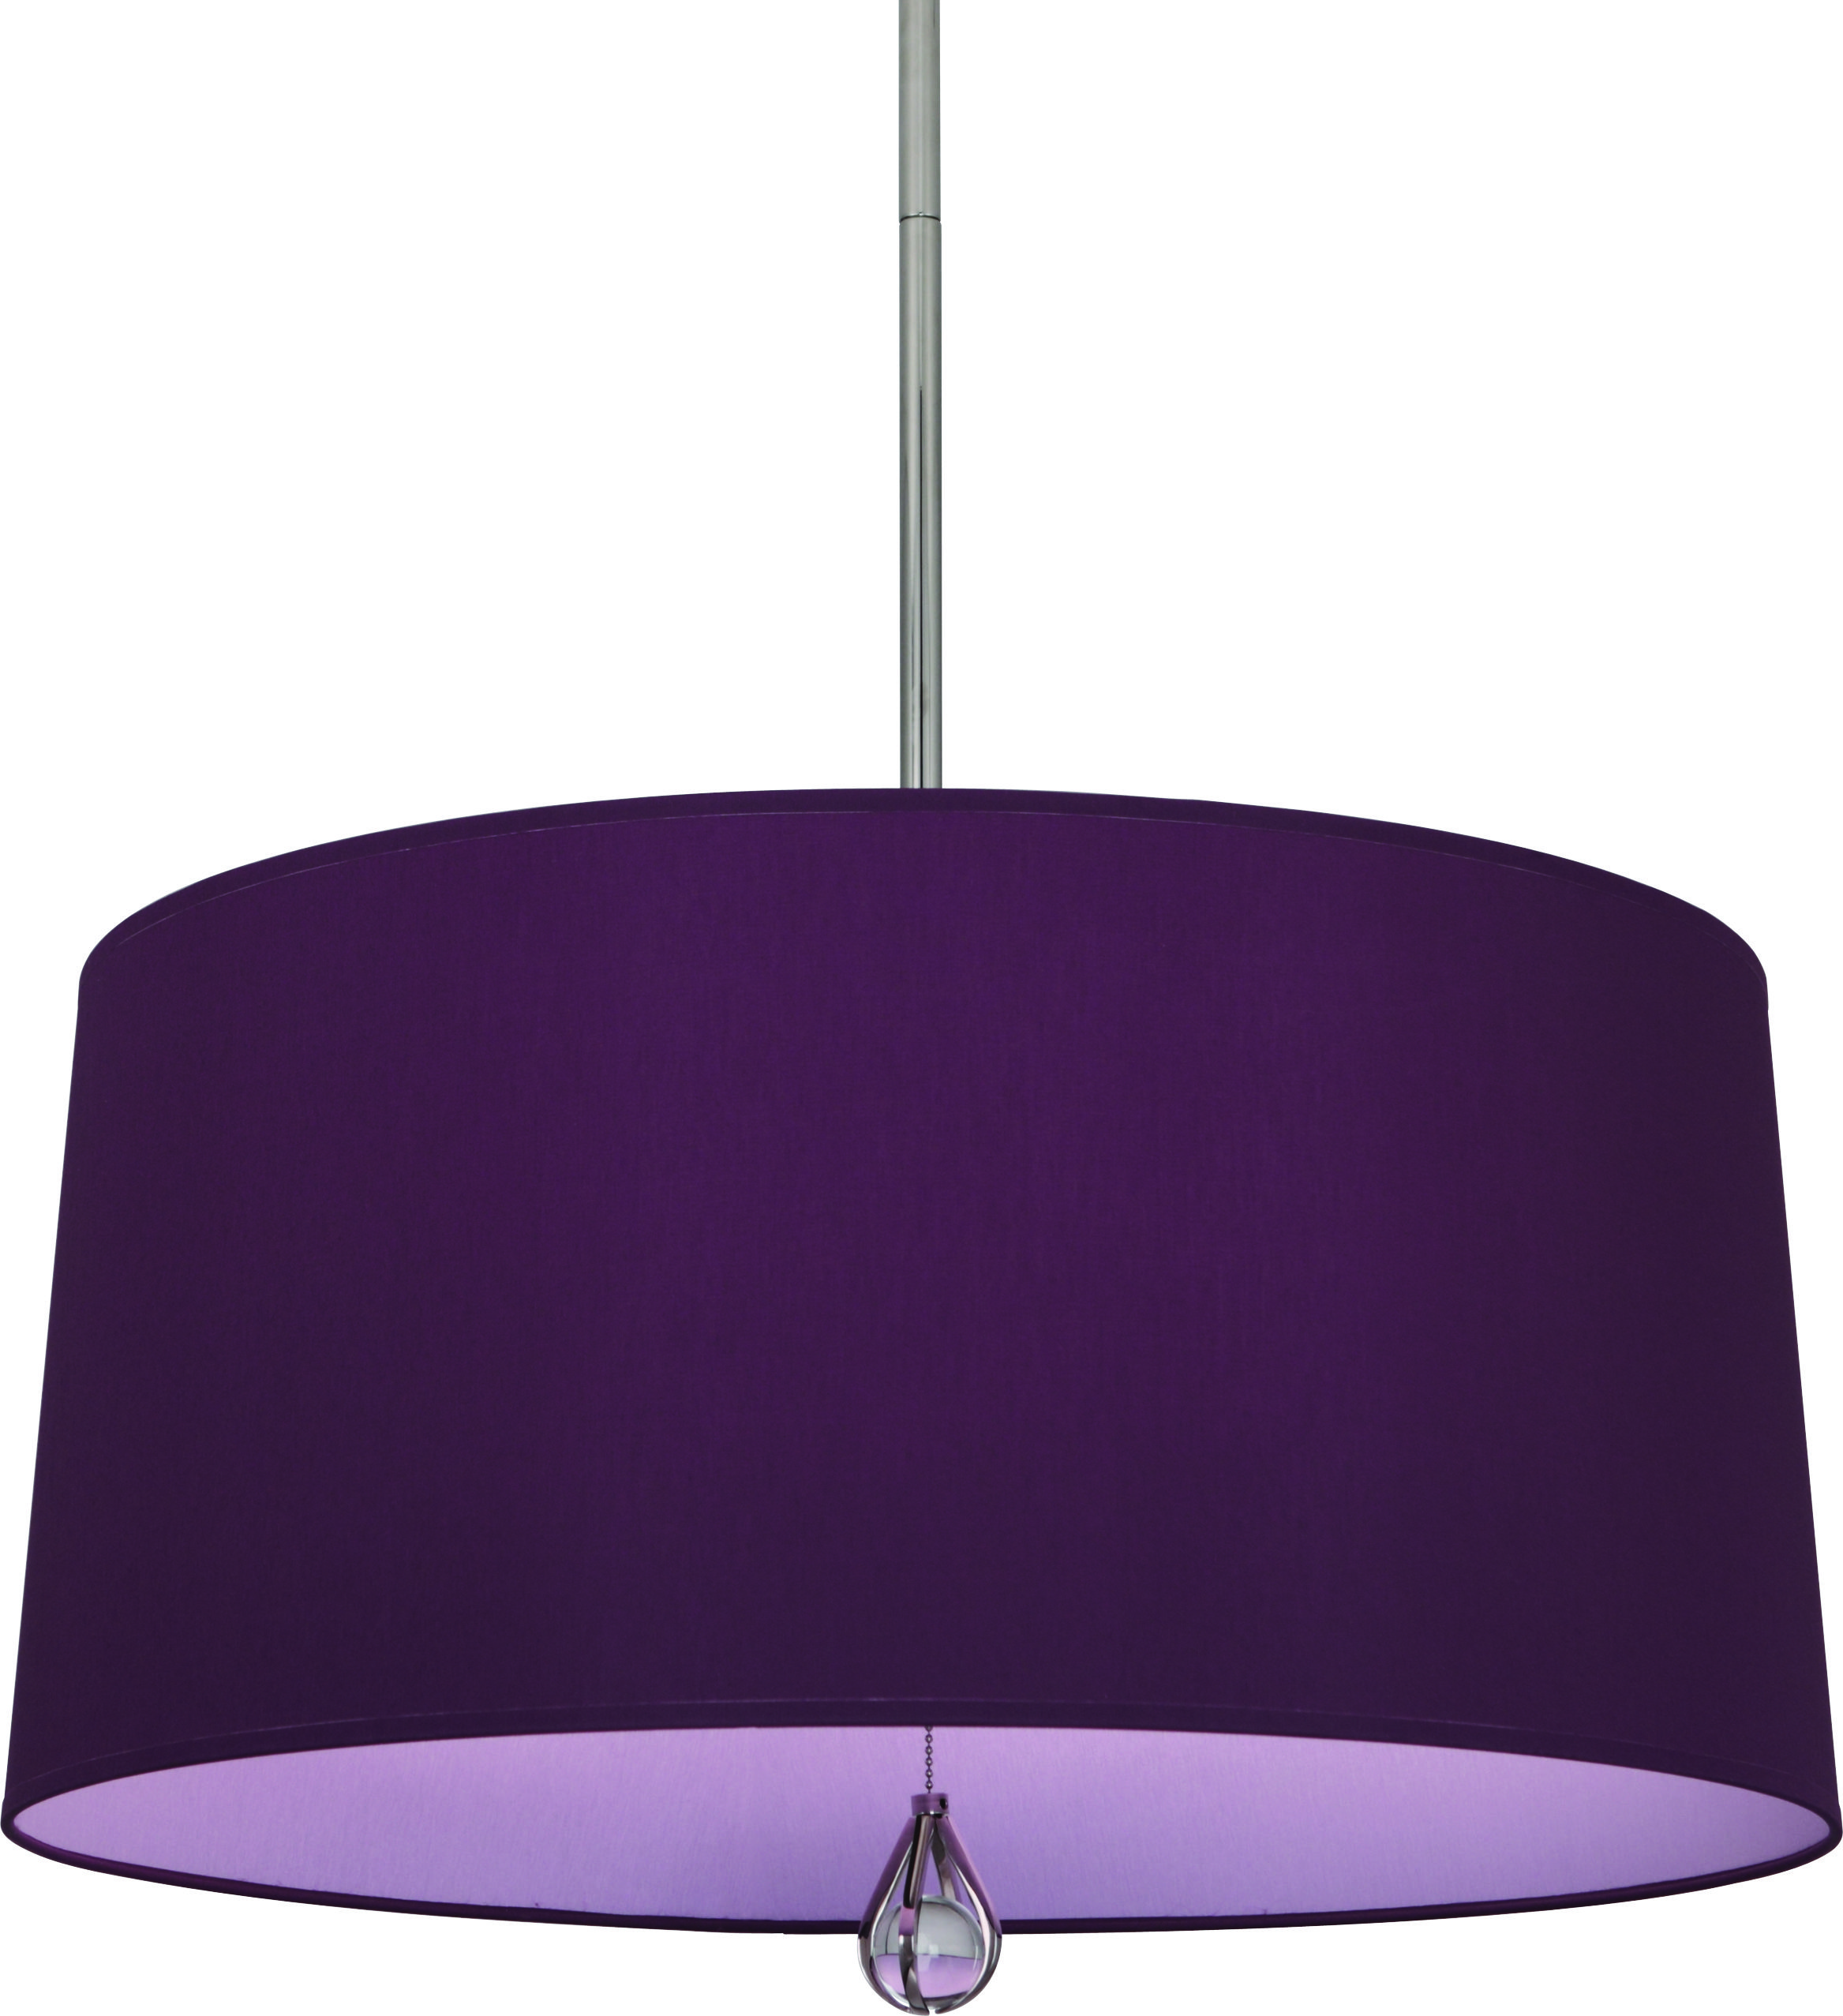 Trend 6 Clean And Contemporary Colored Drum Fixtures By Robert Abbey Hide The Bulb Source In A Polished Nickel Pendant Polished Nickel Robert Abbey Lighting